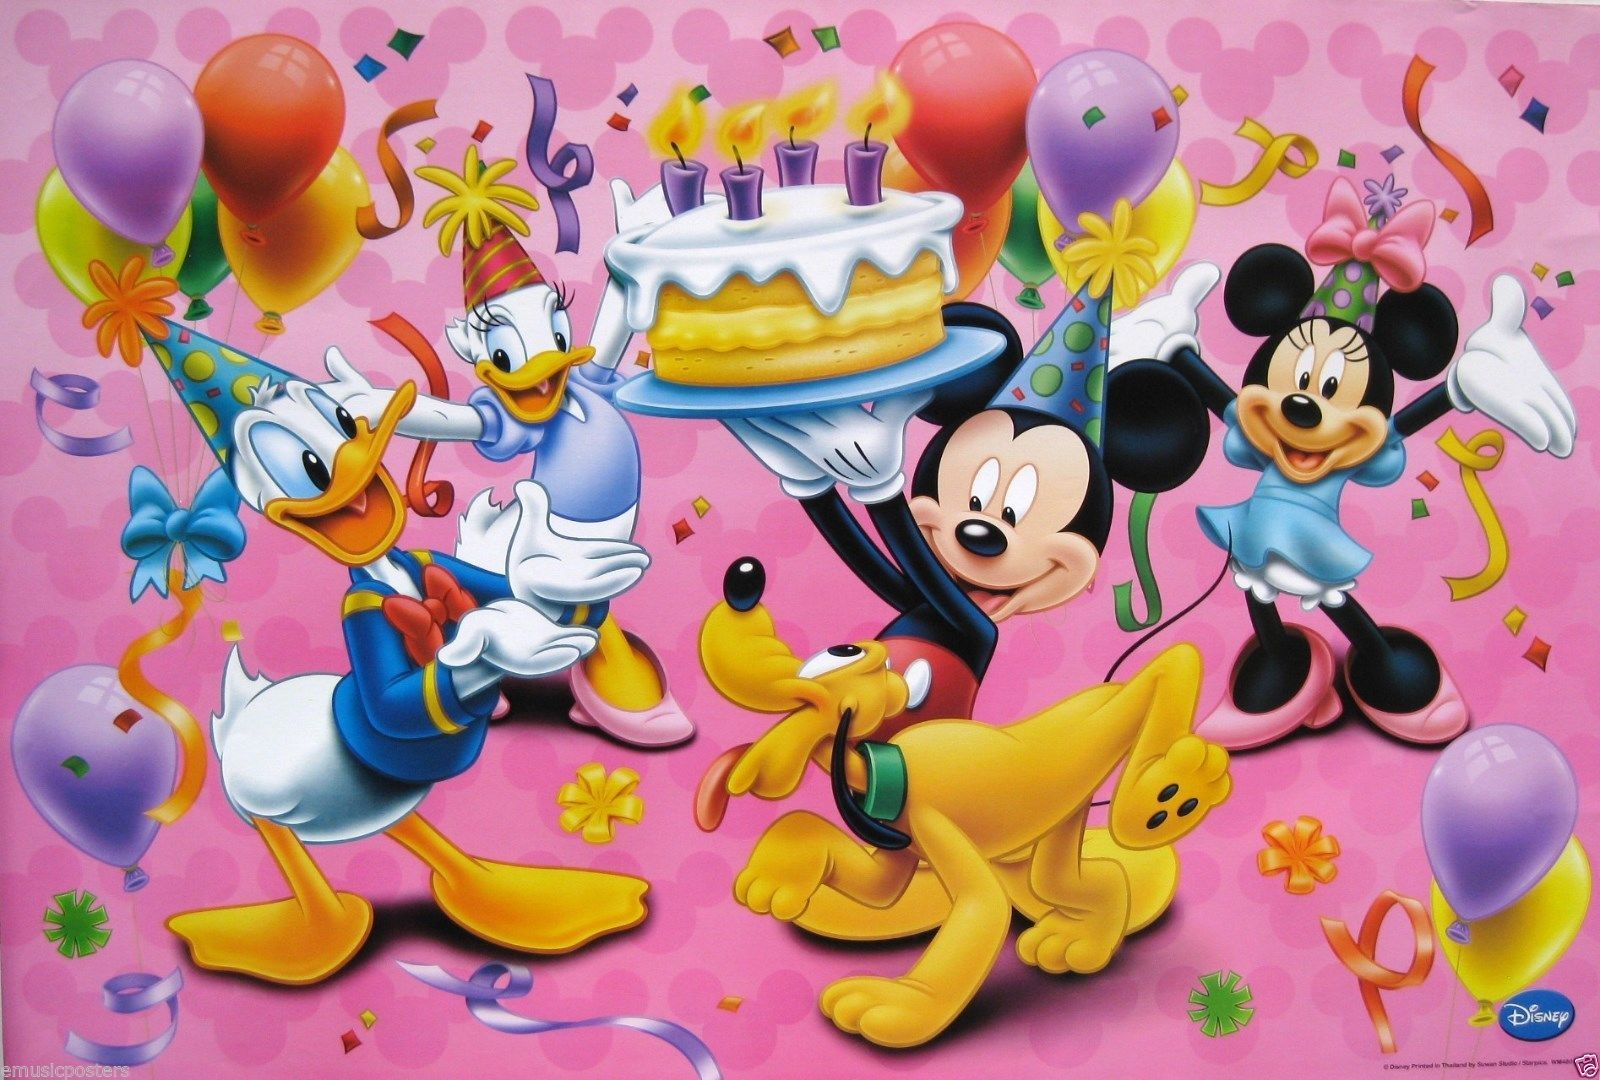 Details About Disney Mickey Mouse Holding Birthday Cake For